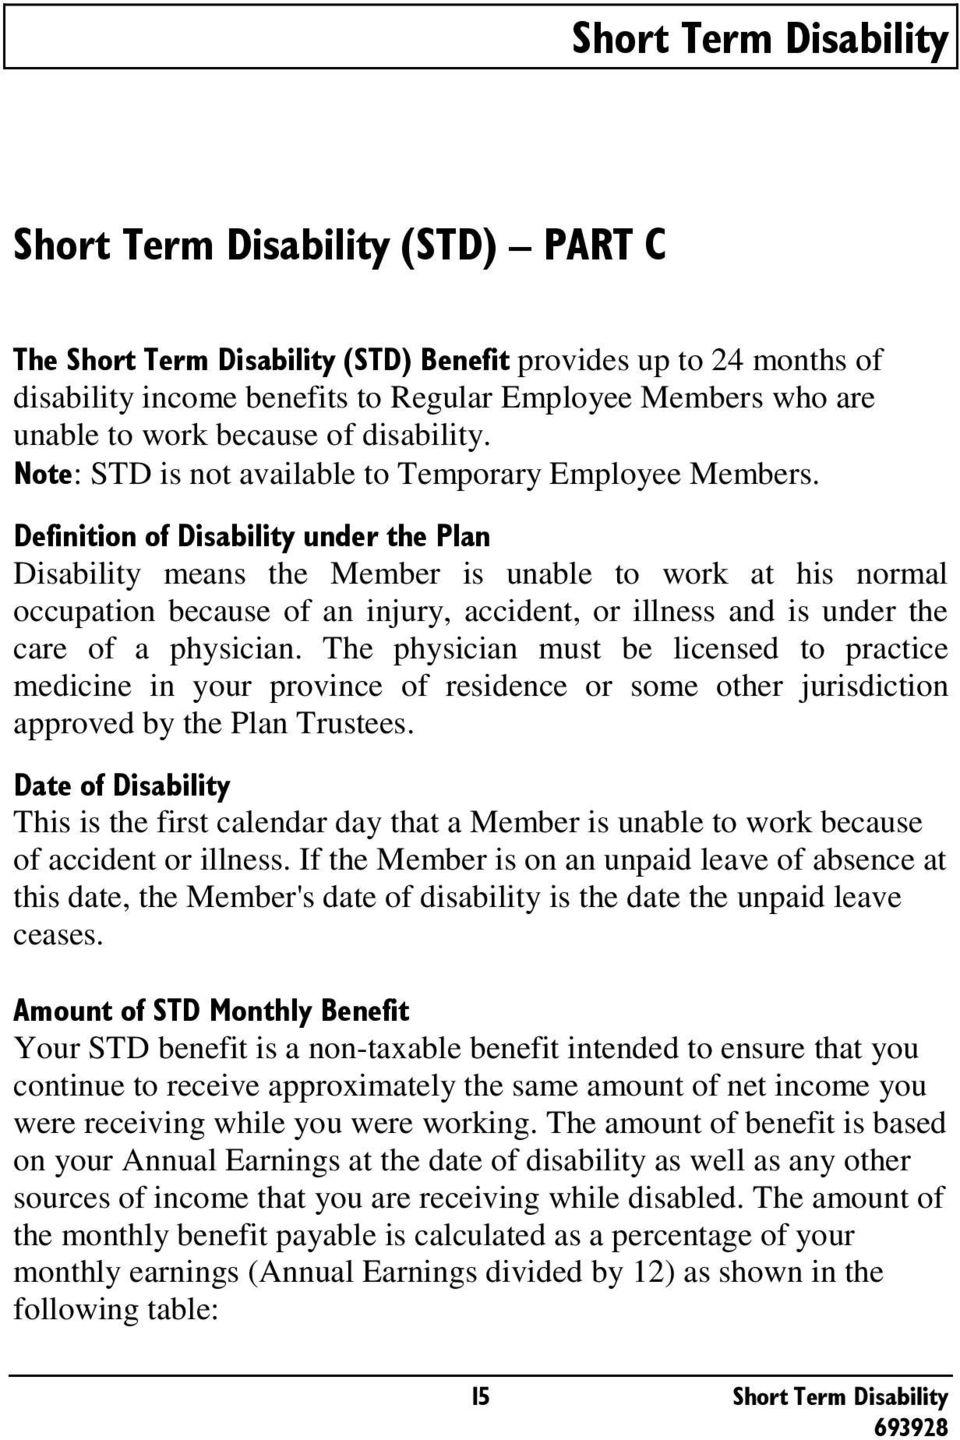 55$4 Disability means the Member is unable to work at his normal occupation because of an injury, accident, or illness and is under the care of a physician.